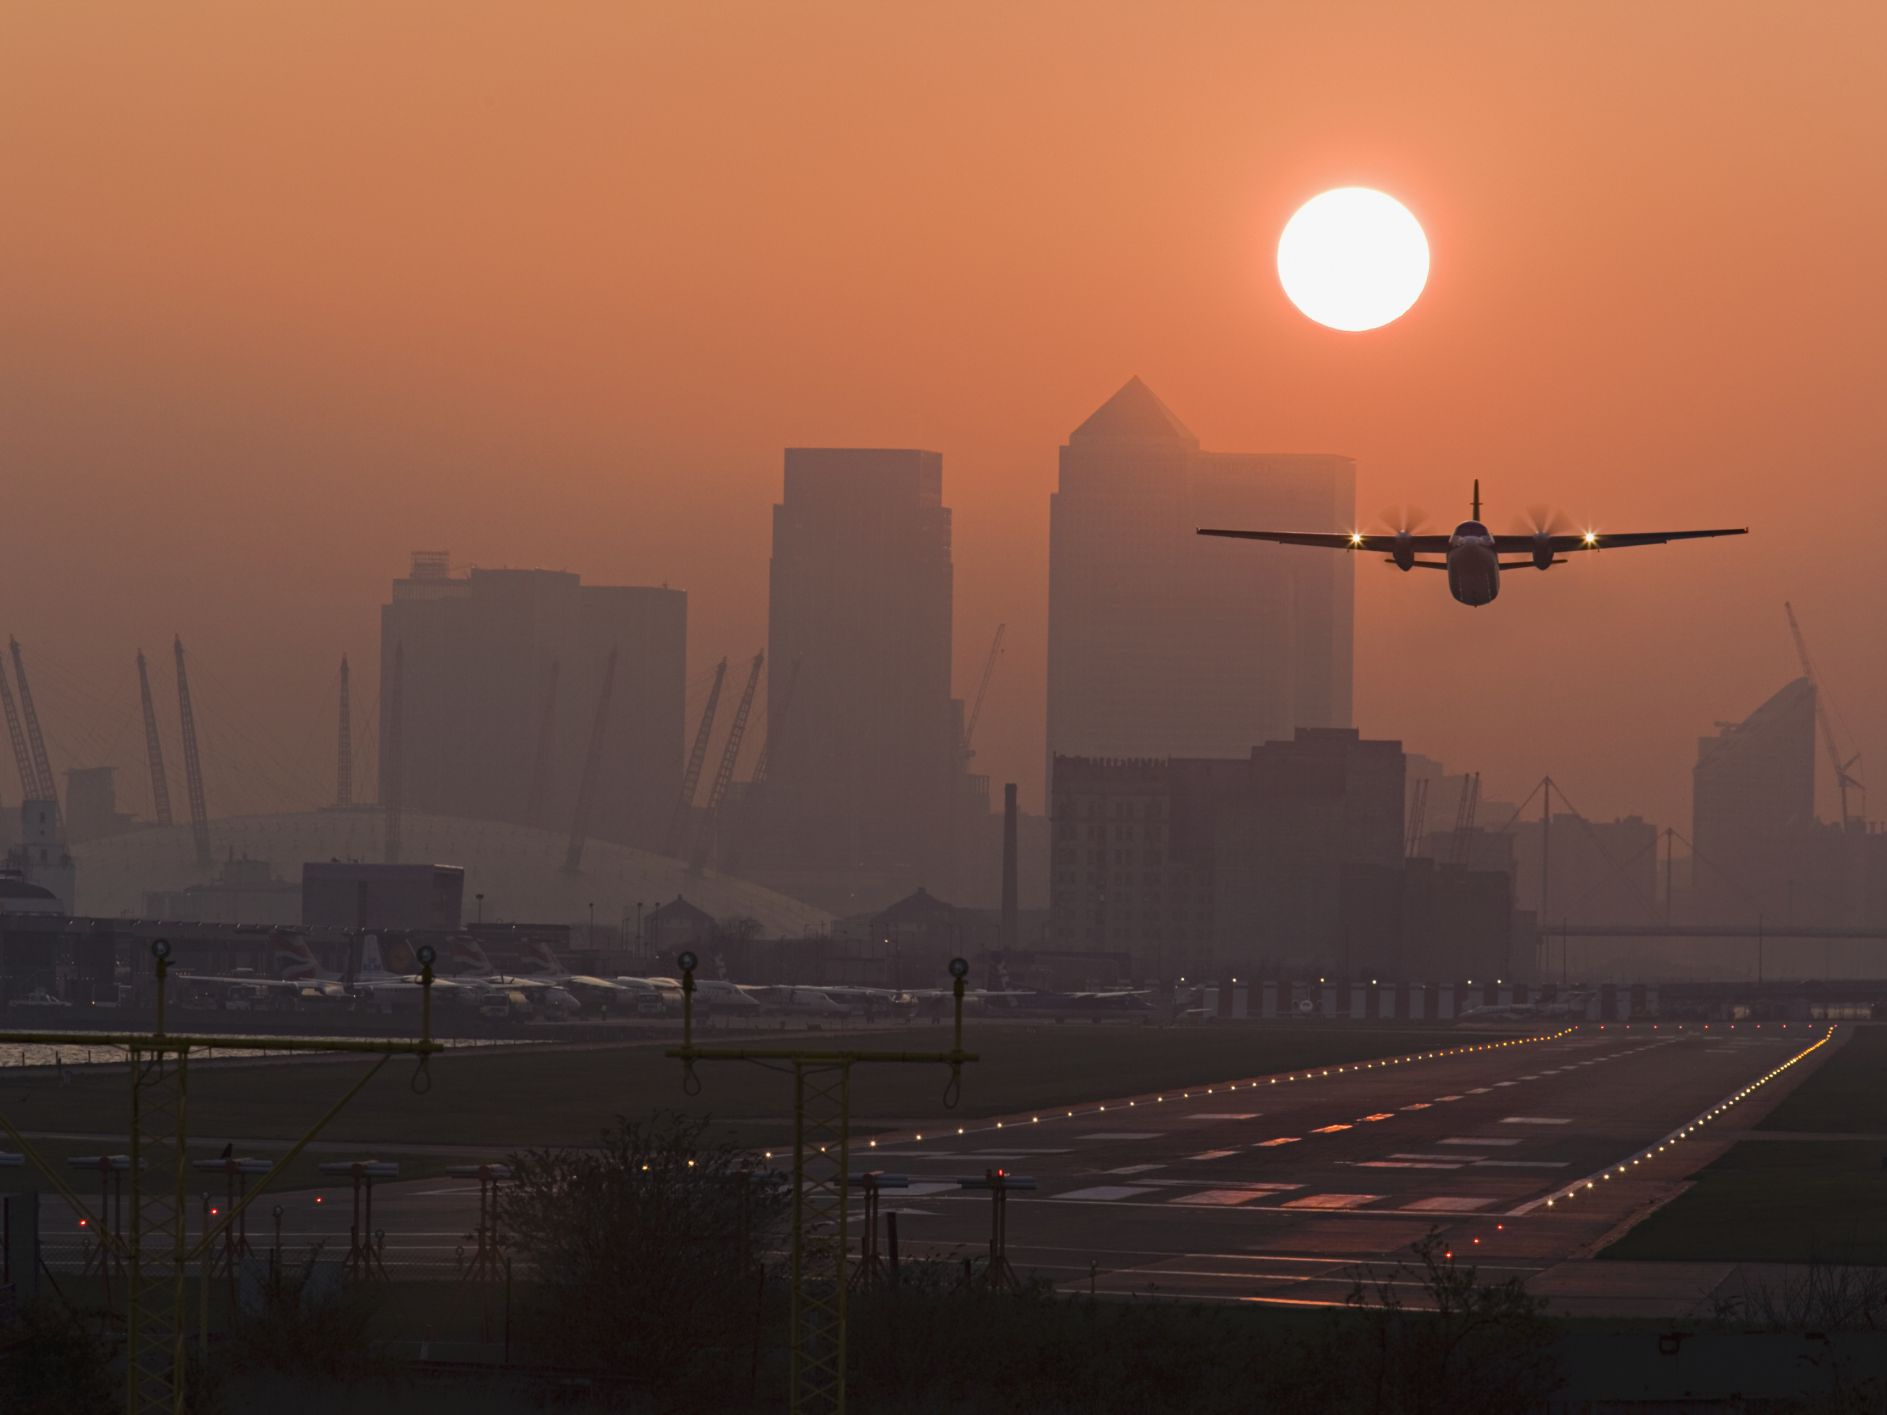 How To Get To Central London From London City Airport